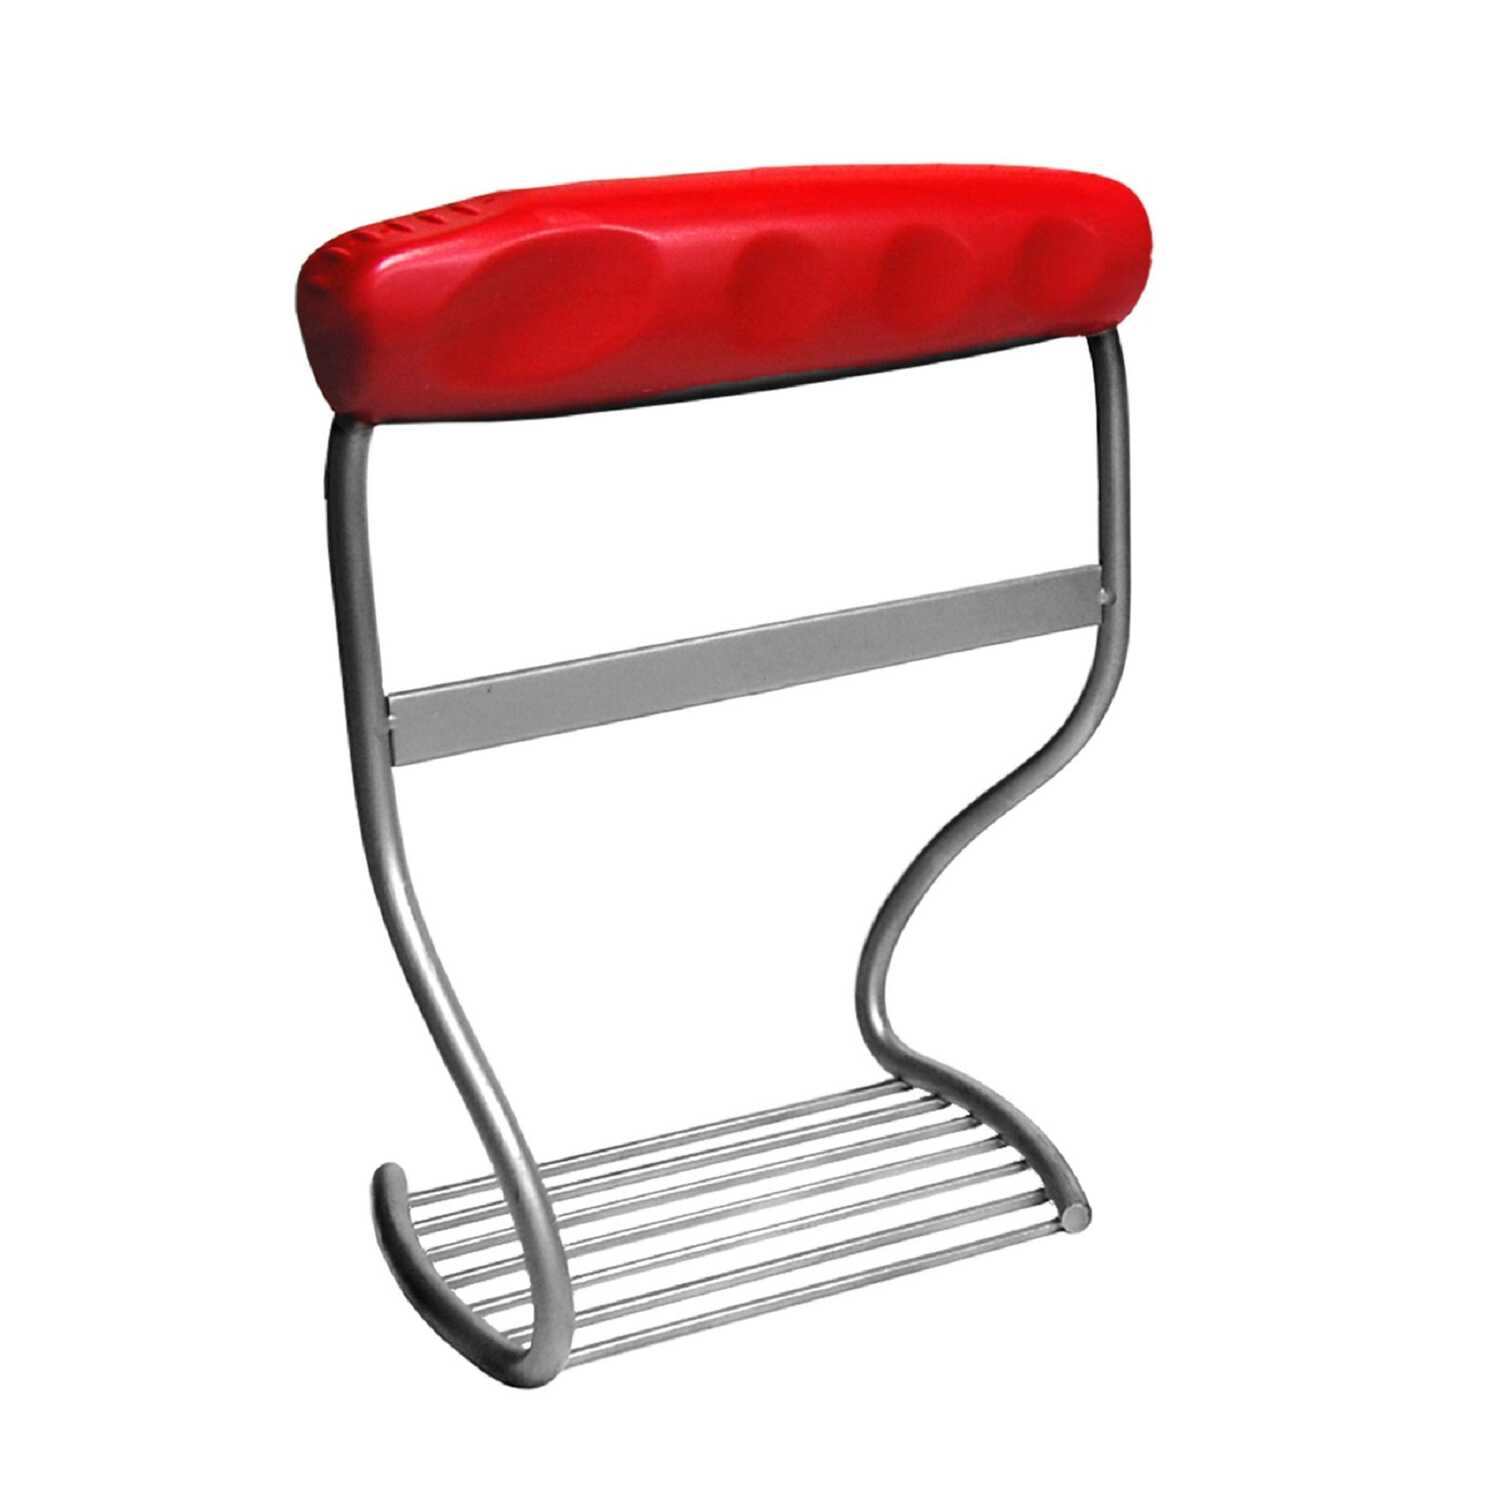 Cool Kitchen Innovations Red Stainless Steel Pie Blender Ace Evergreenethics Interior Chair Design Evergreenethicsorg